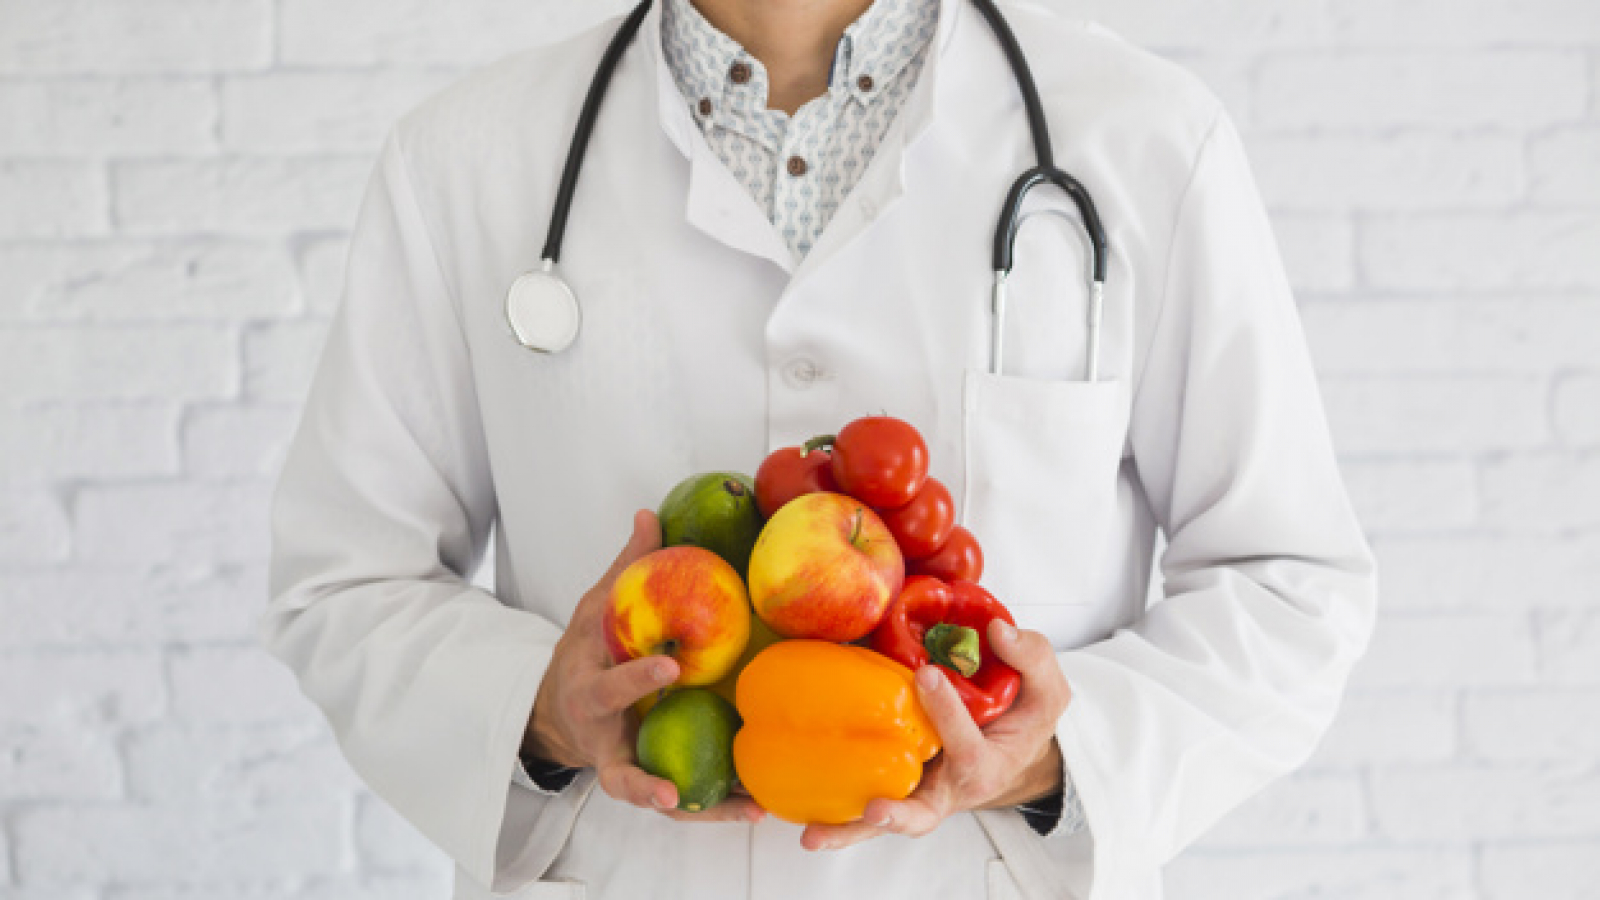 close-up-male-doctor-s-hand-holding-fresh-produce-healthy-fruit-vegetable_23-2147855415